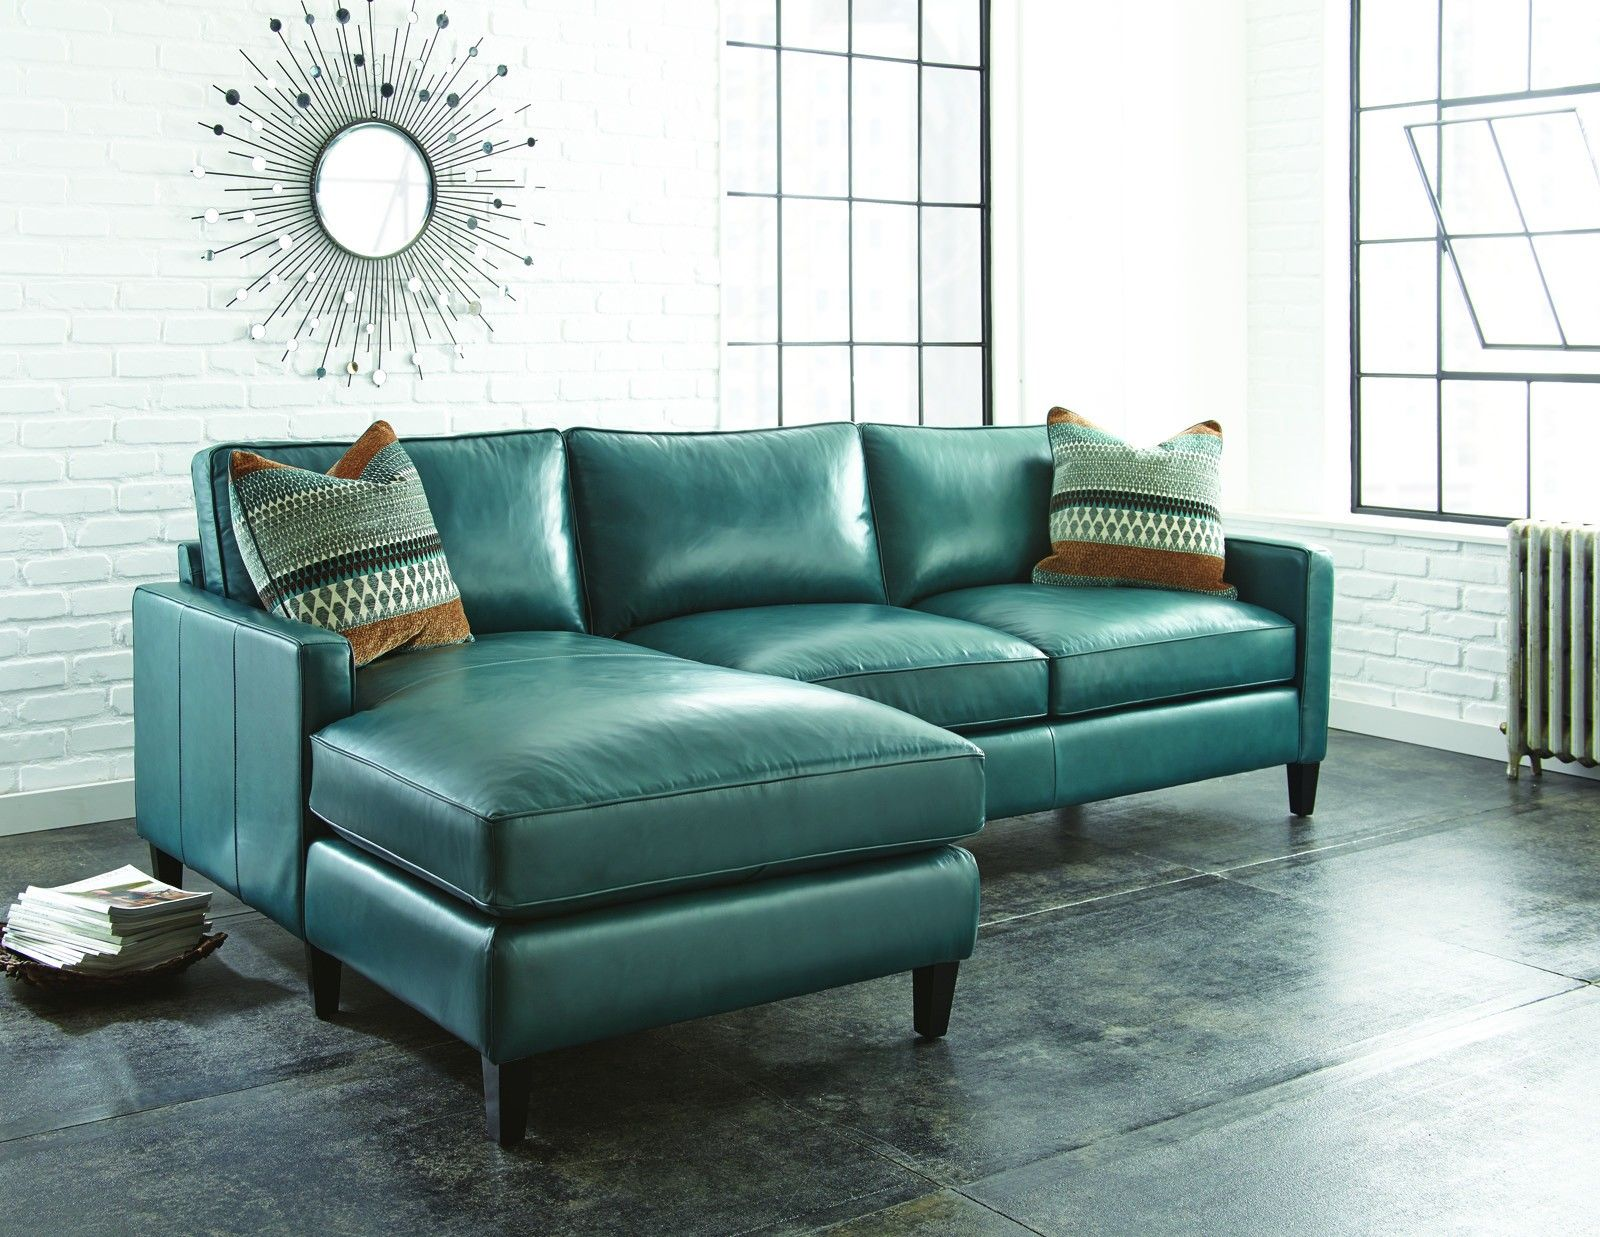 48 best Sofas images on Pinterest